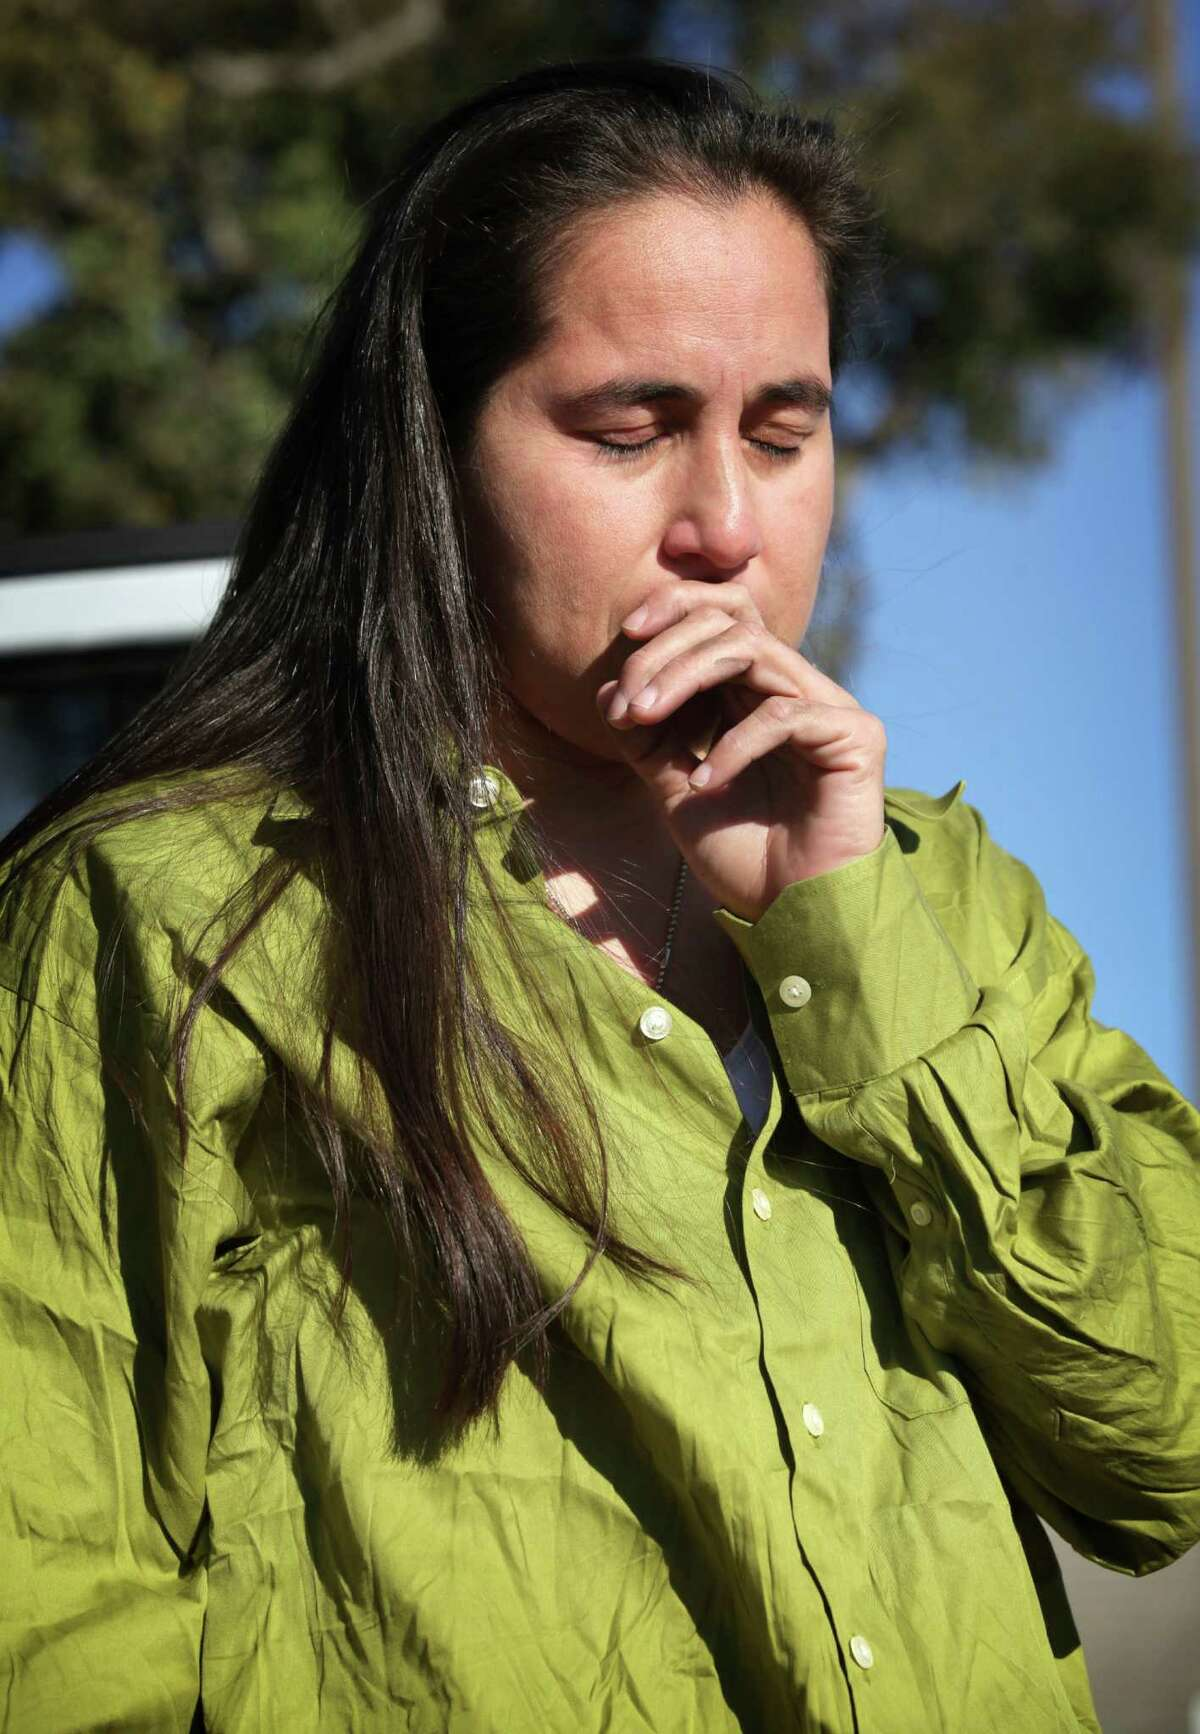 An emotional Anna Vasquez, pauses before answering questions about three of her friends who are still in prison, after she was released, on parole, from the Crain Unit in Gatesville on Nov. 2, 2012. Vasquez is one of four San Antonio women fighting to clear their names in the 1994 sexual assault of two sisters.